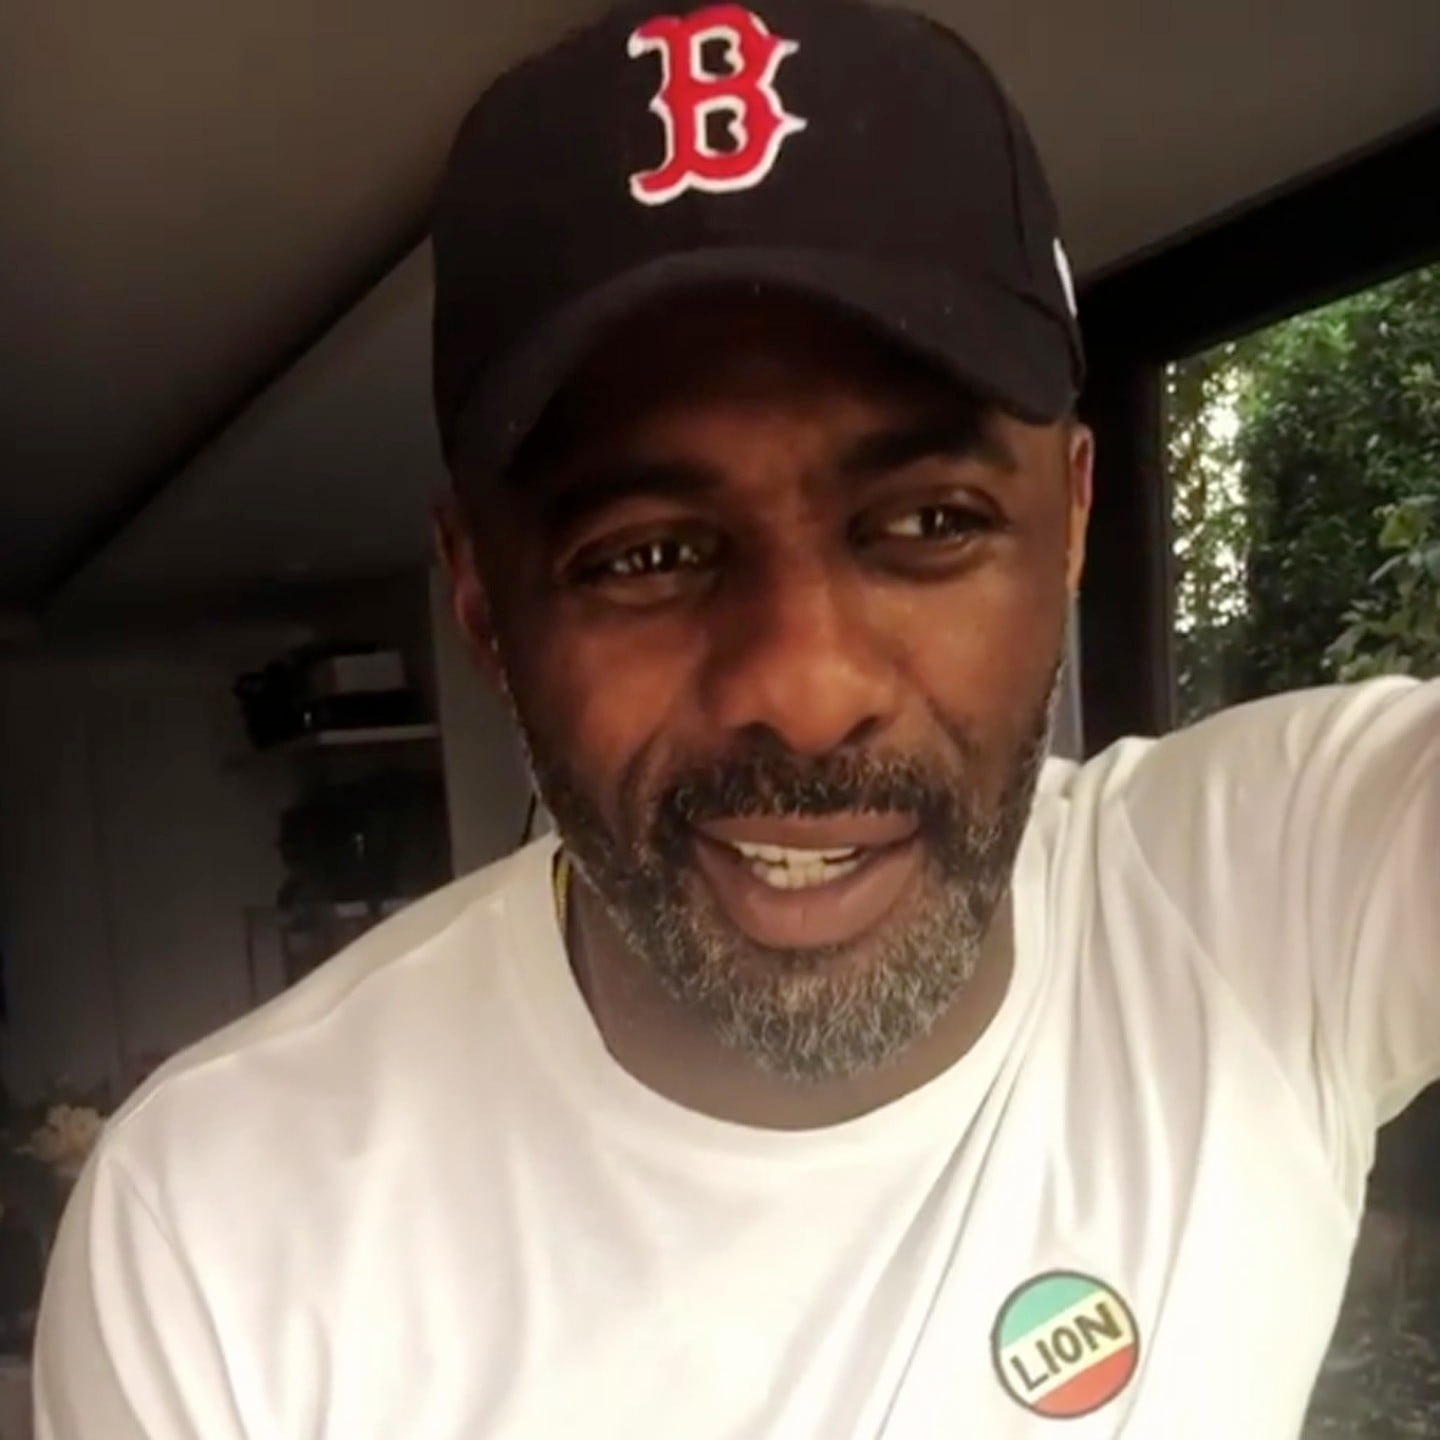 Idris Elba S Birthday Message On Instagram 2018 Popsugar Celebrity